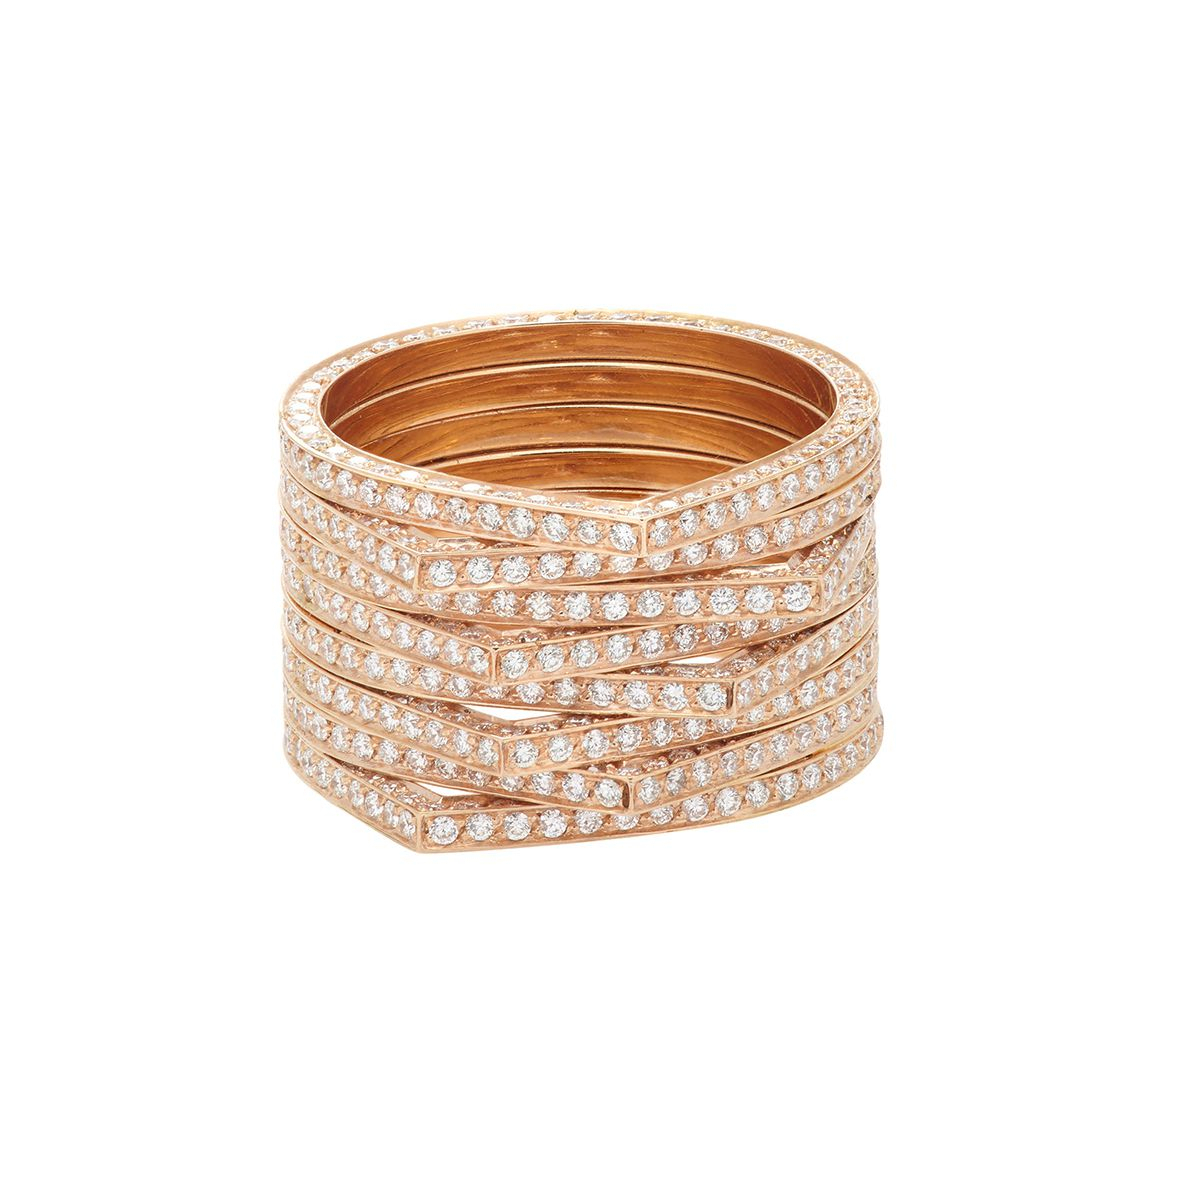 41 Unique Wedding Rings Throughout Most Recently Released Diamond Two Row Anniversary Rings In Gold (View 10 of 25)